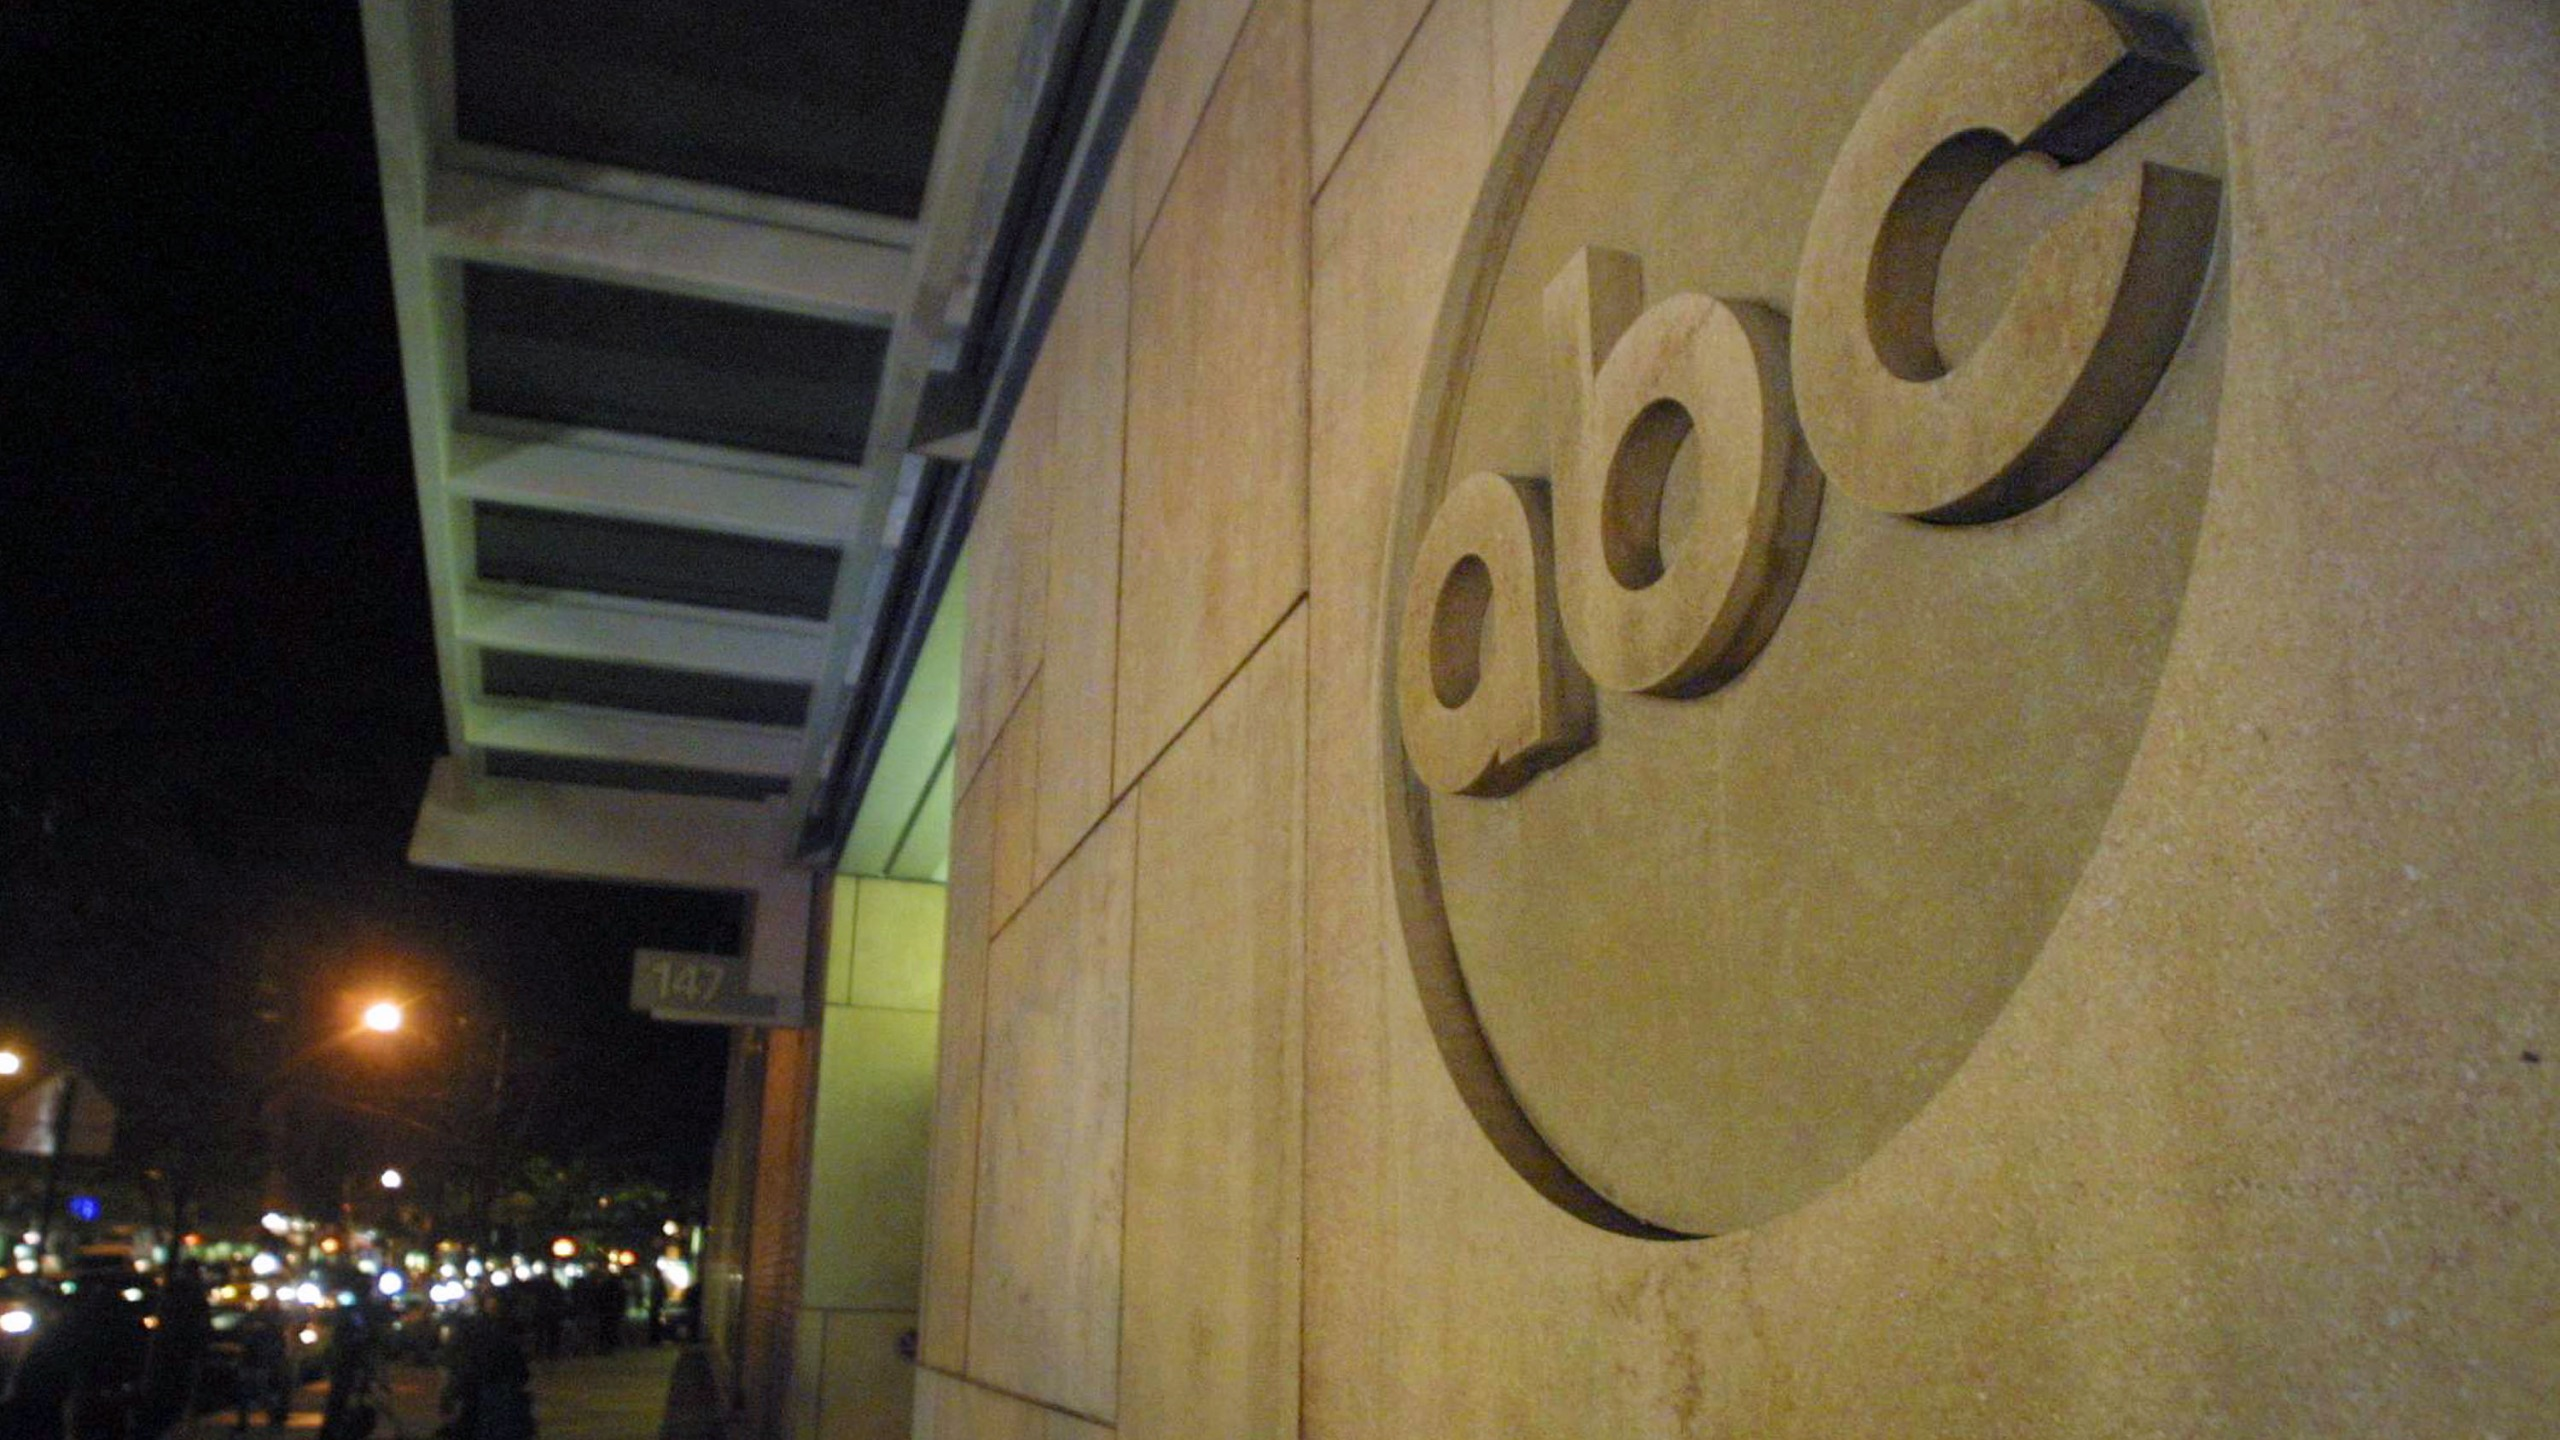 The ABC logo is displayed outside ABC News headquarters after an anthrax scare October 15, 2001, in New York City. (Mario Tama/Getty Images)